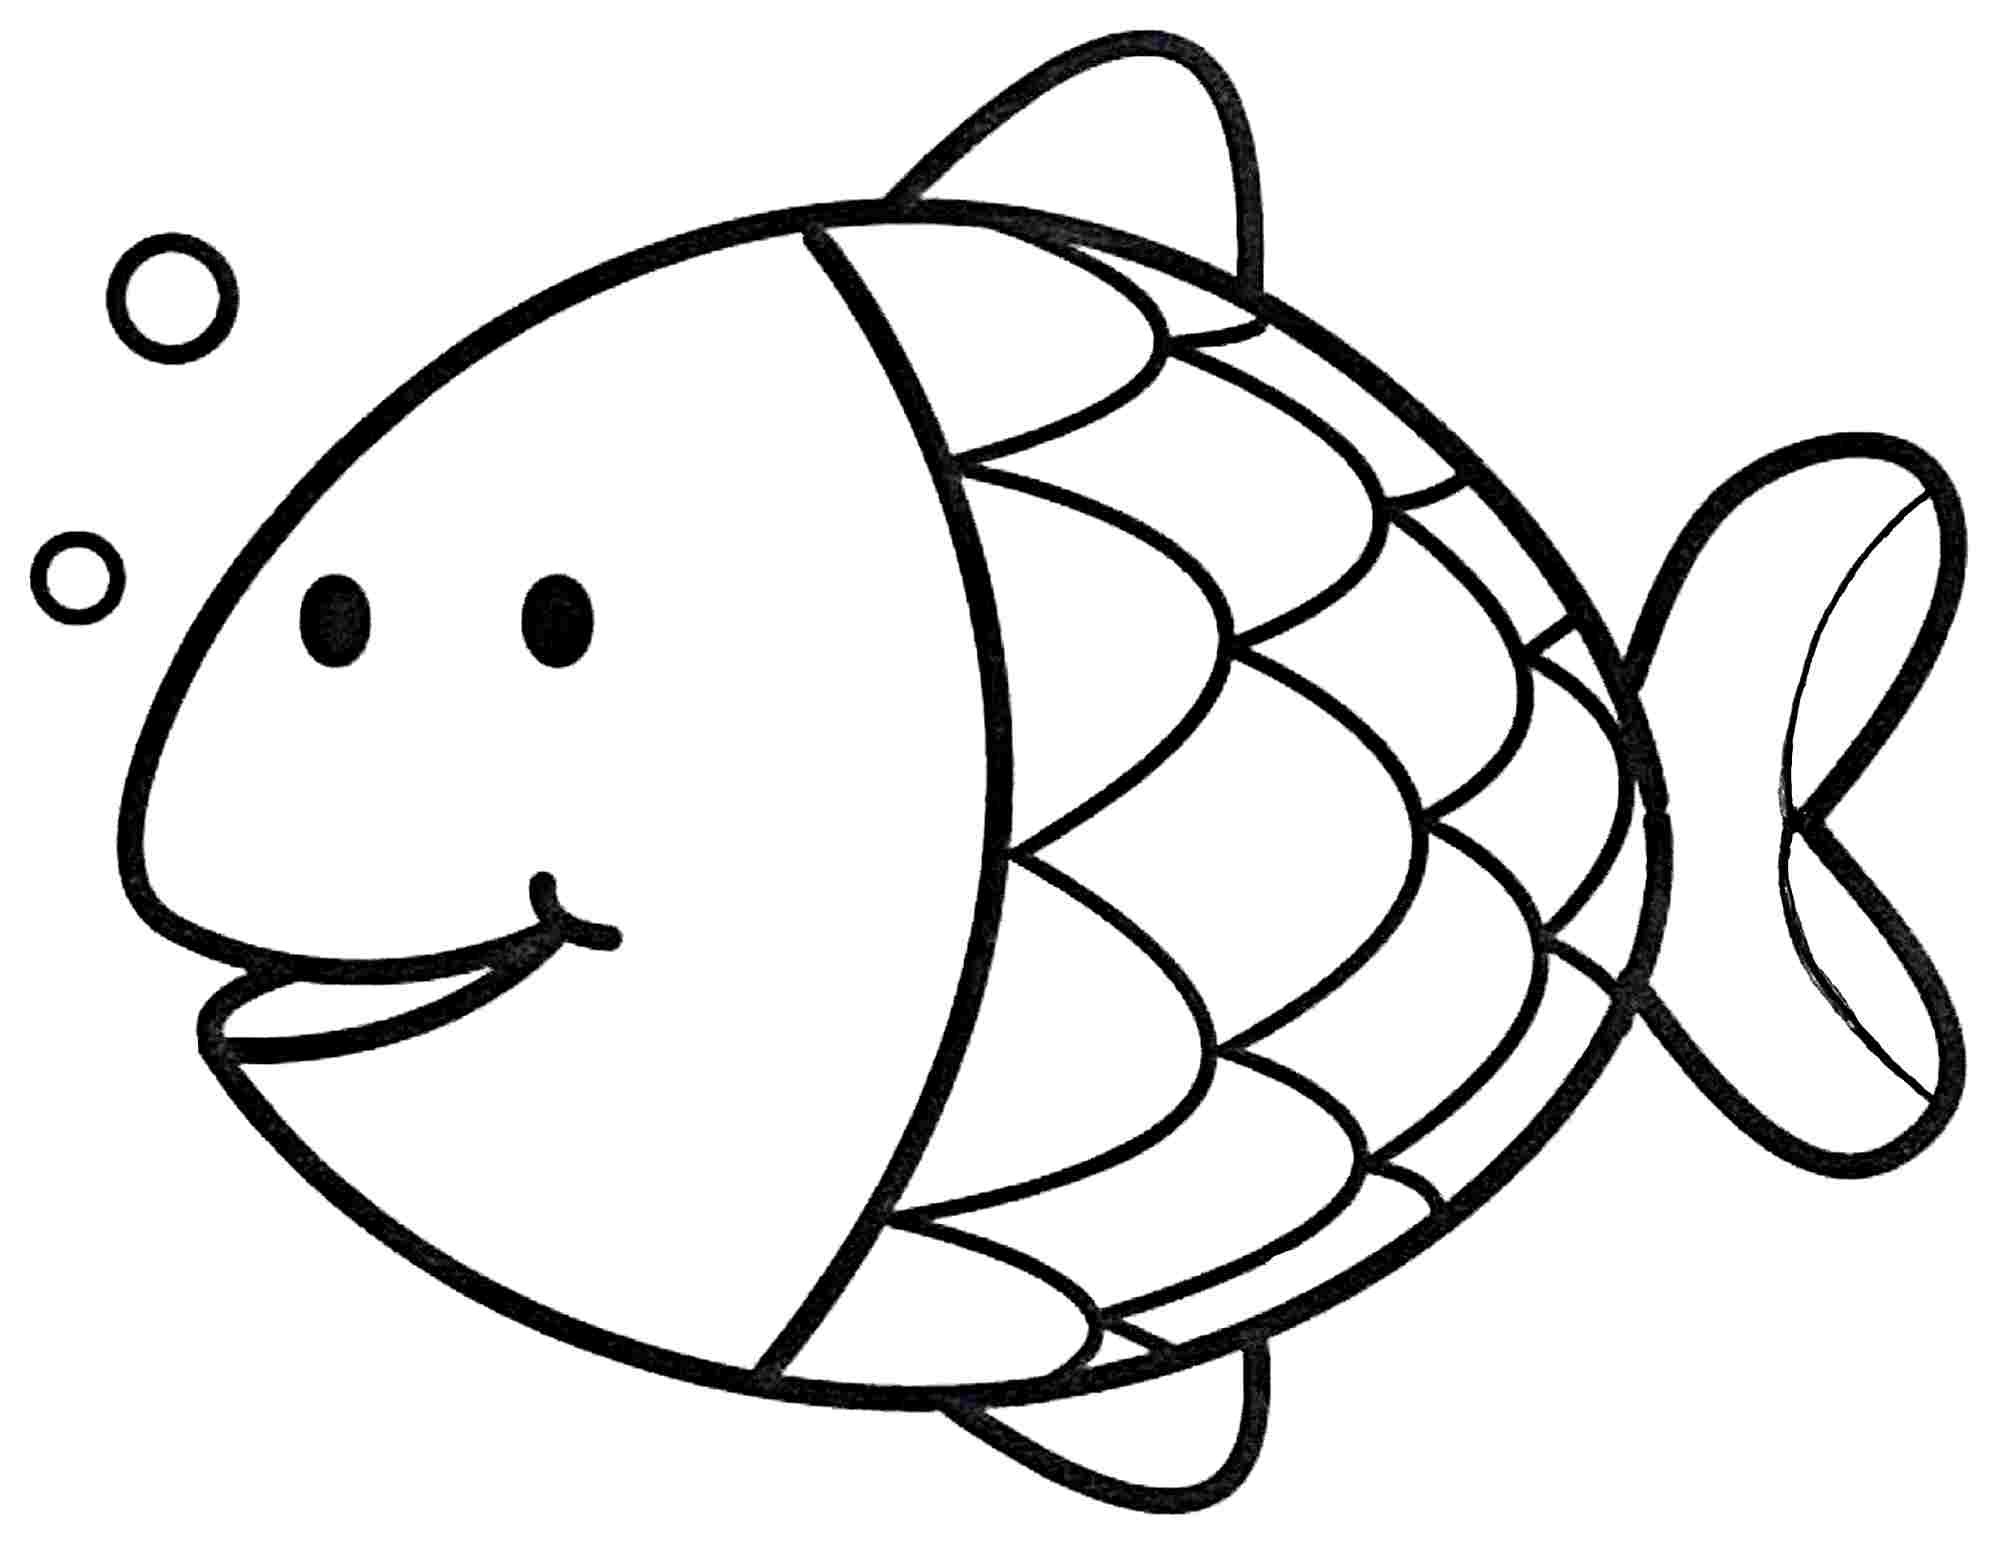 coloring fish pages print download cute and educative fish coloring pages fish coloring pages